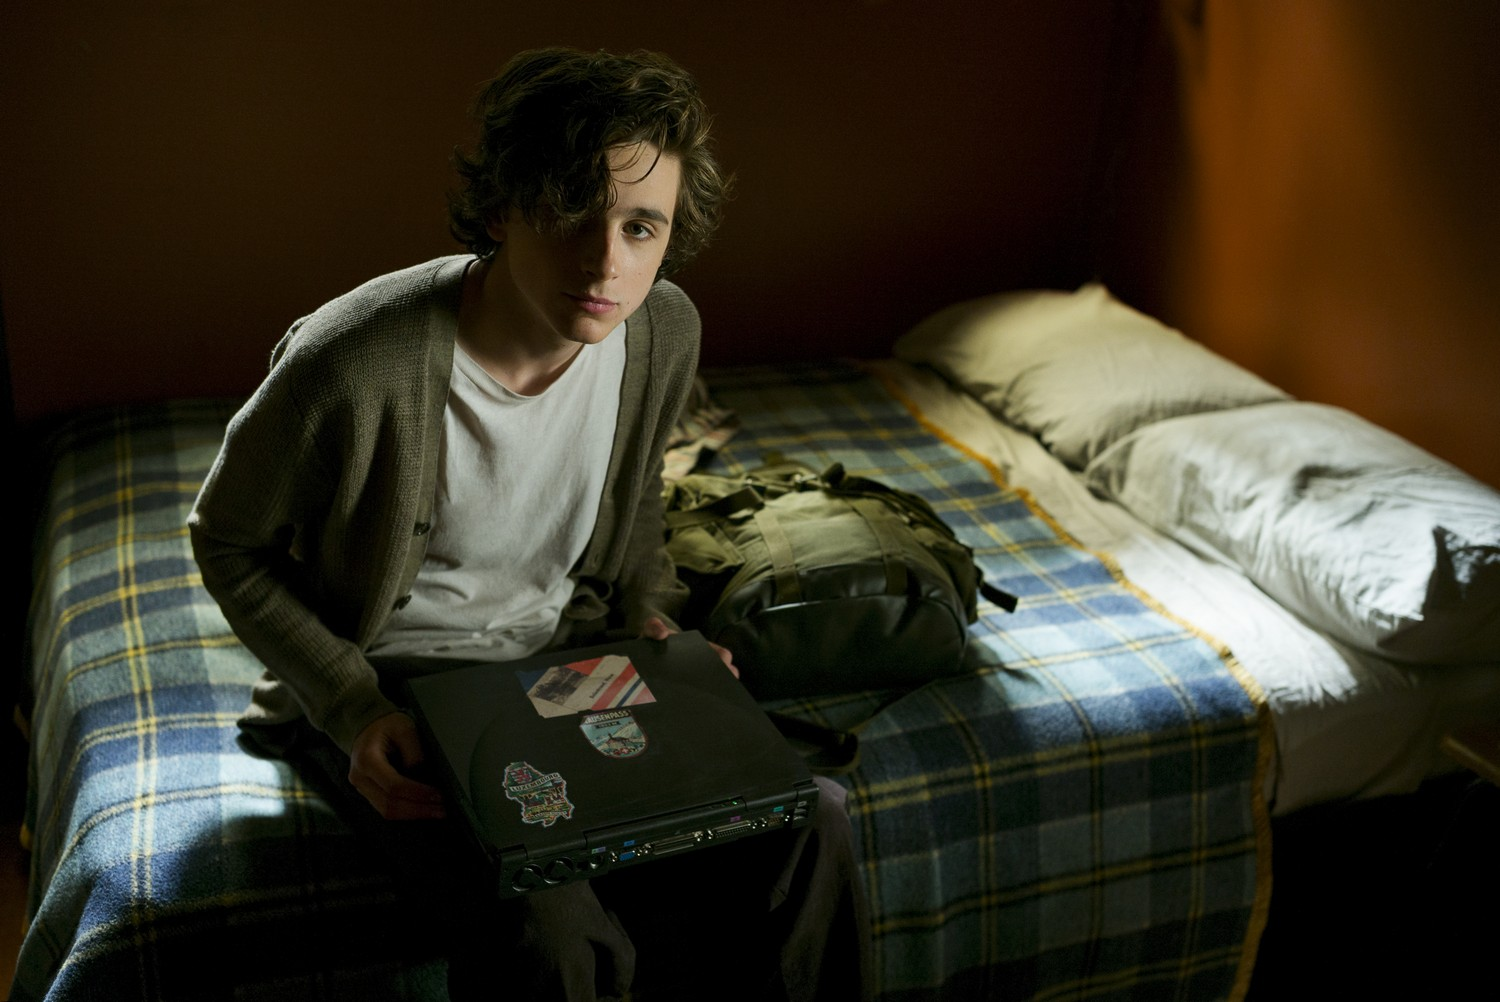 beautiful boy steve carell chalamet cinema metanfetamine sheff